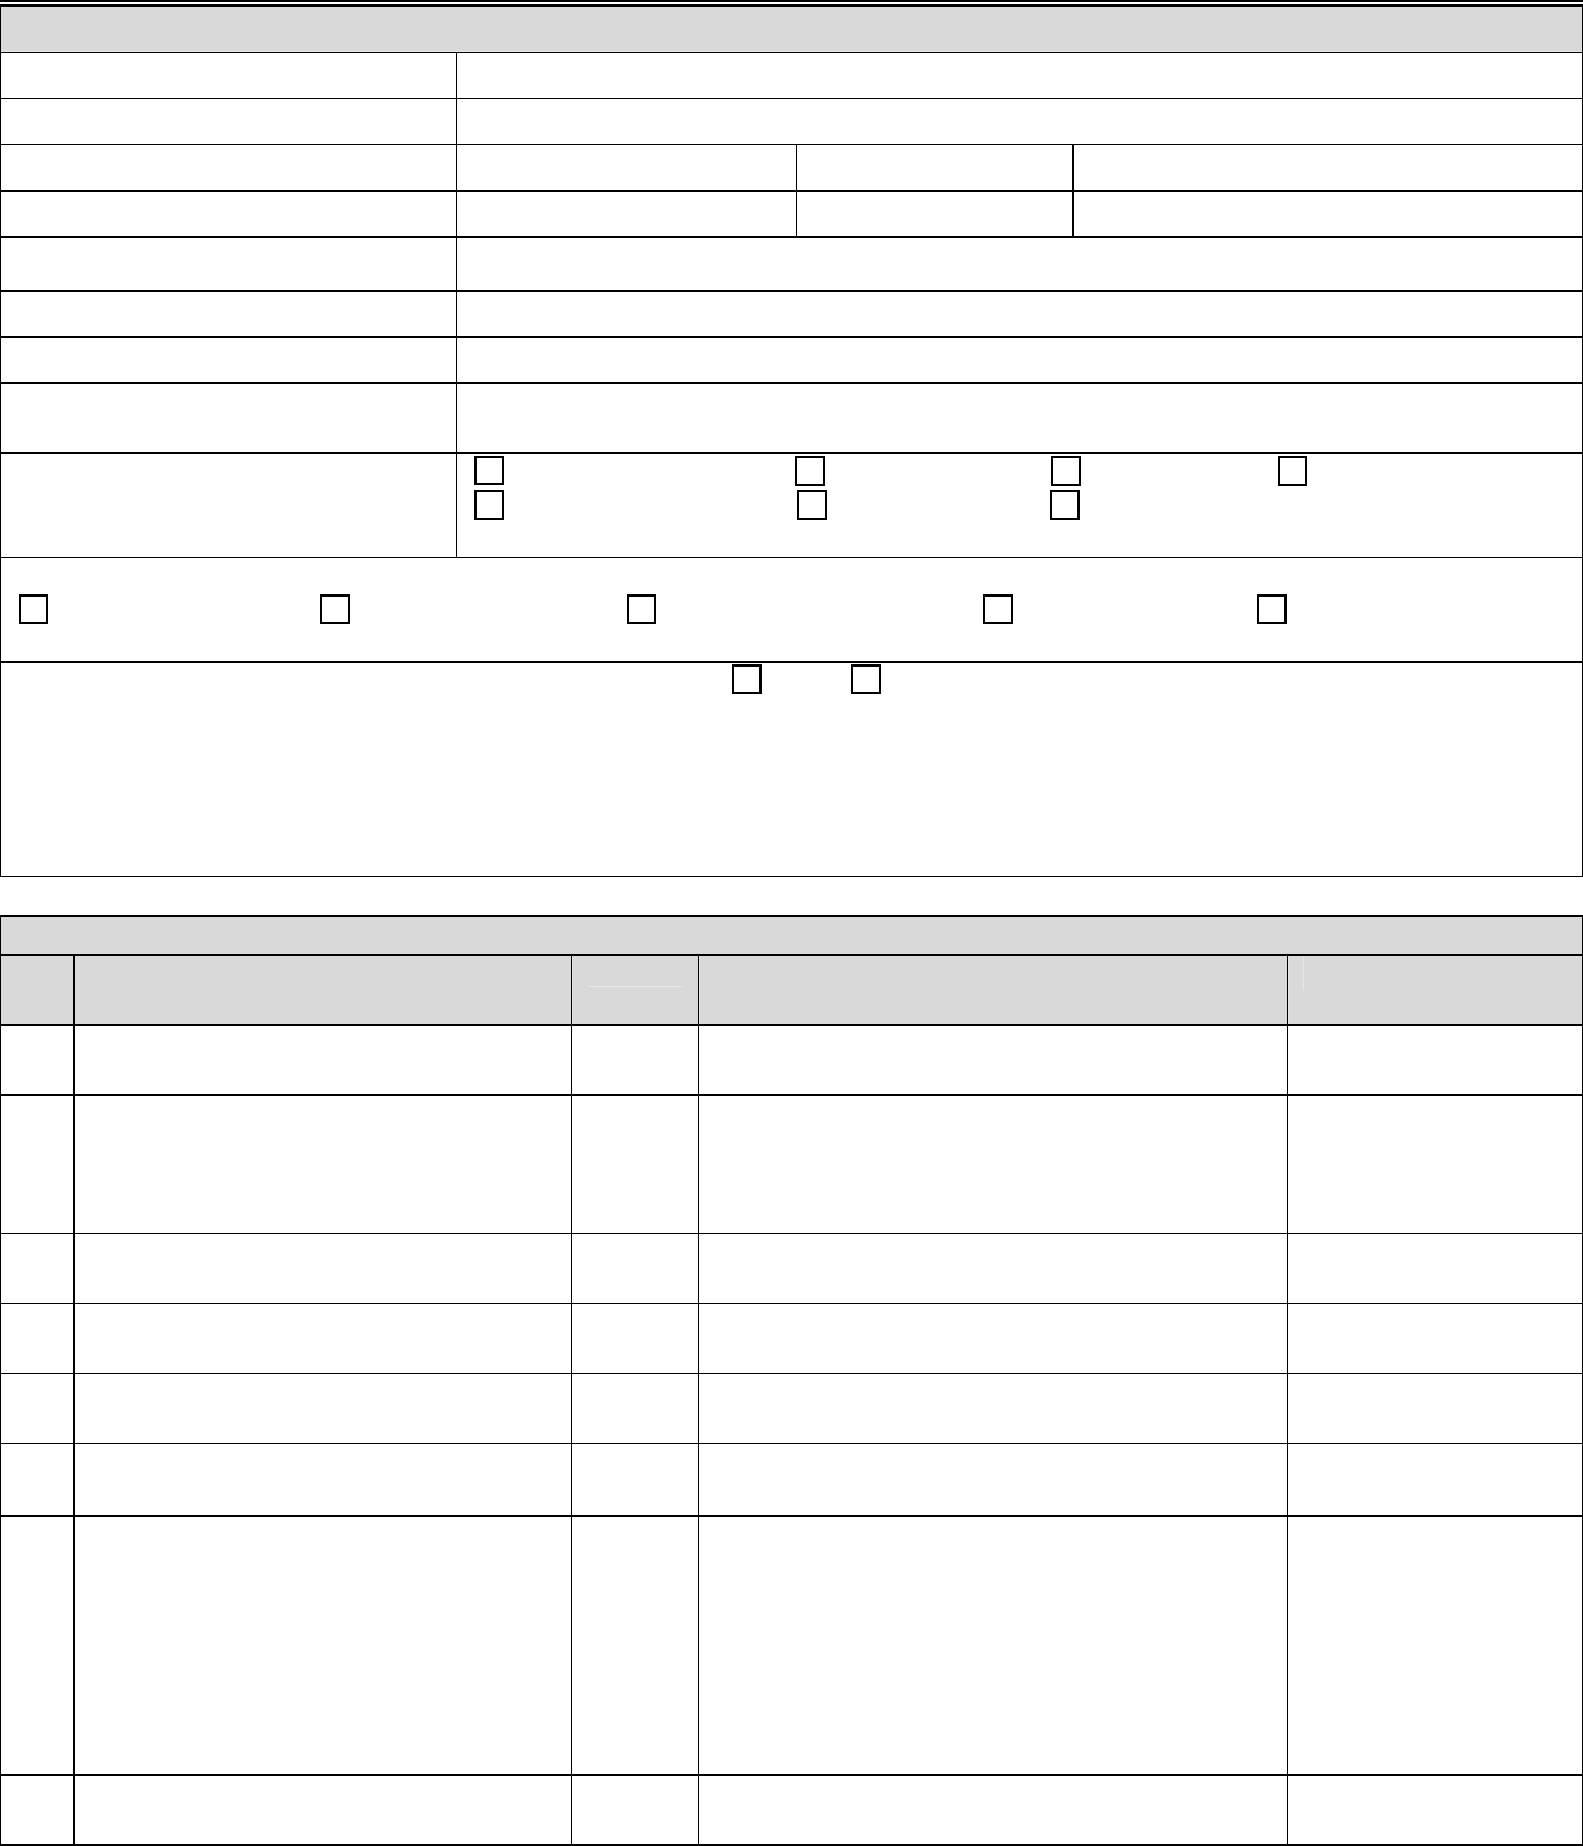 Standard Construction Activity Inspection Form Free Download